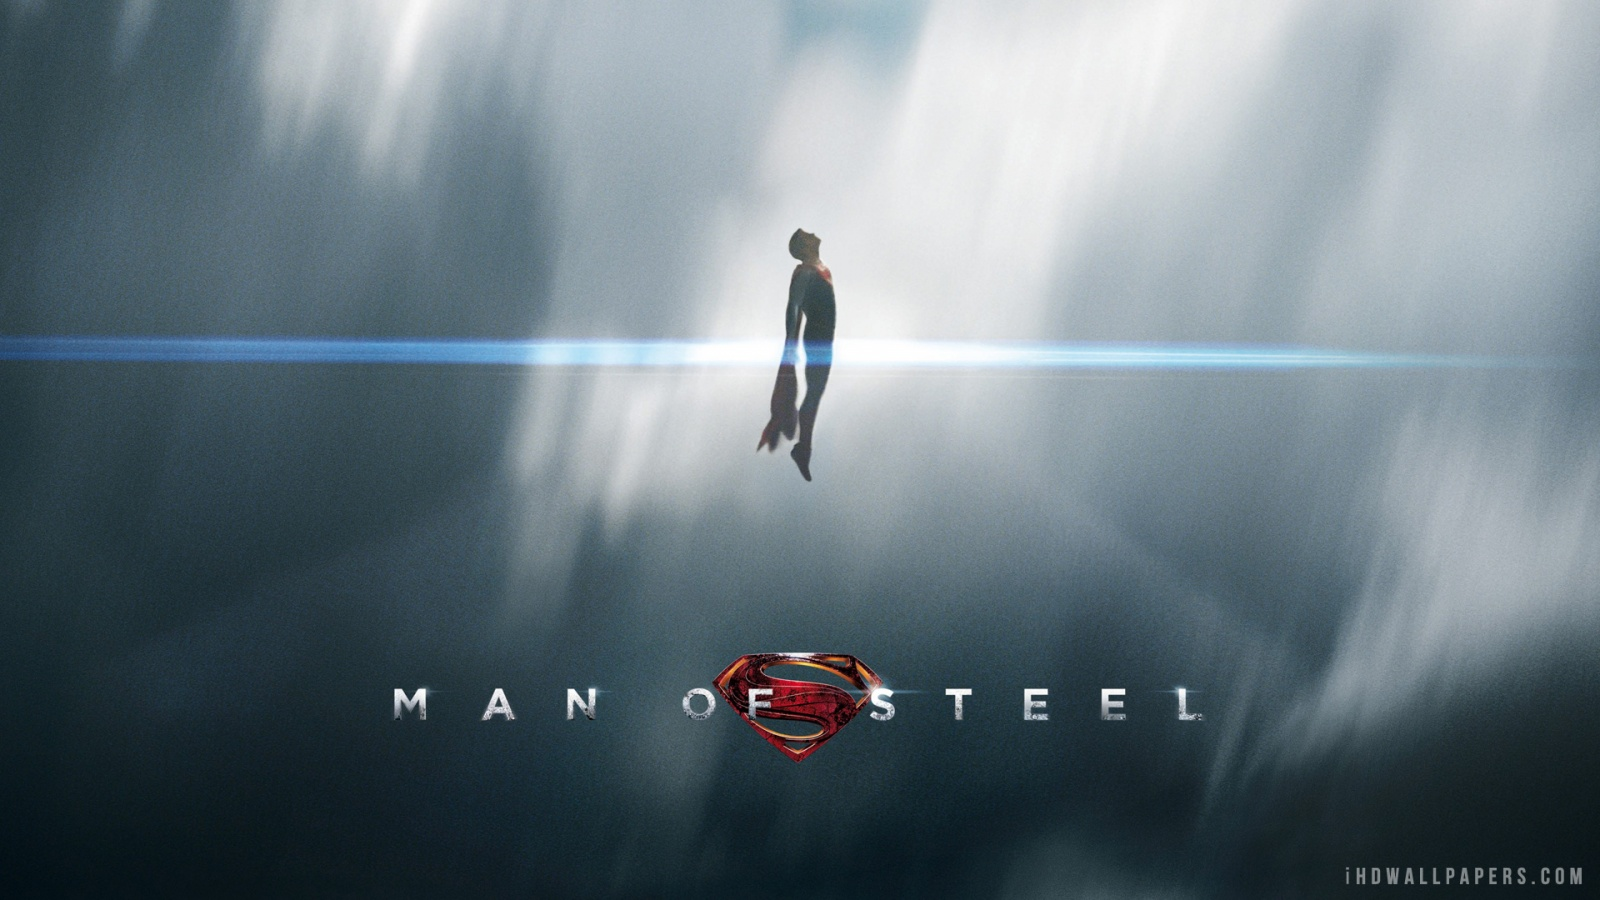 Man of Steel 2 HD Wallpaper   iHD Wallpapers 1600x900